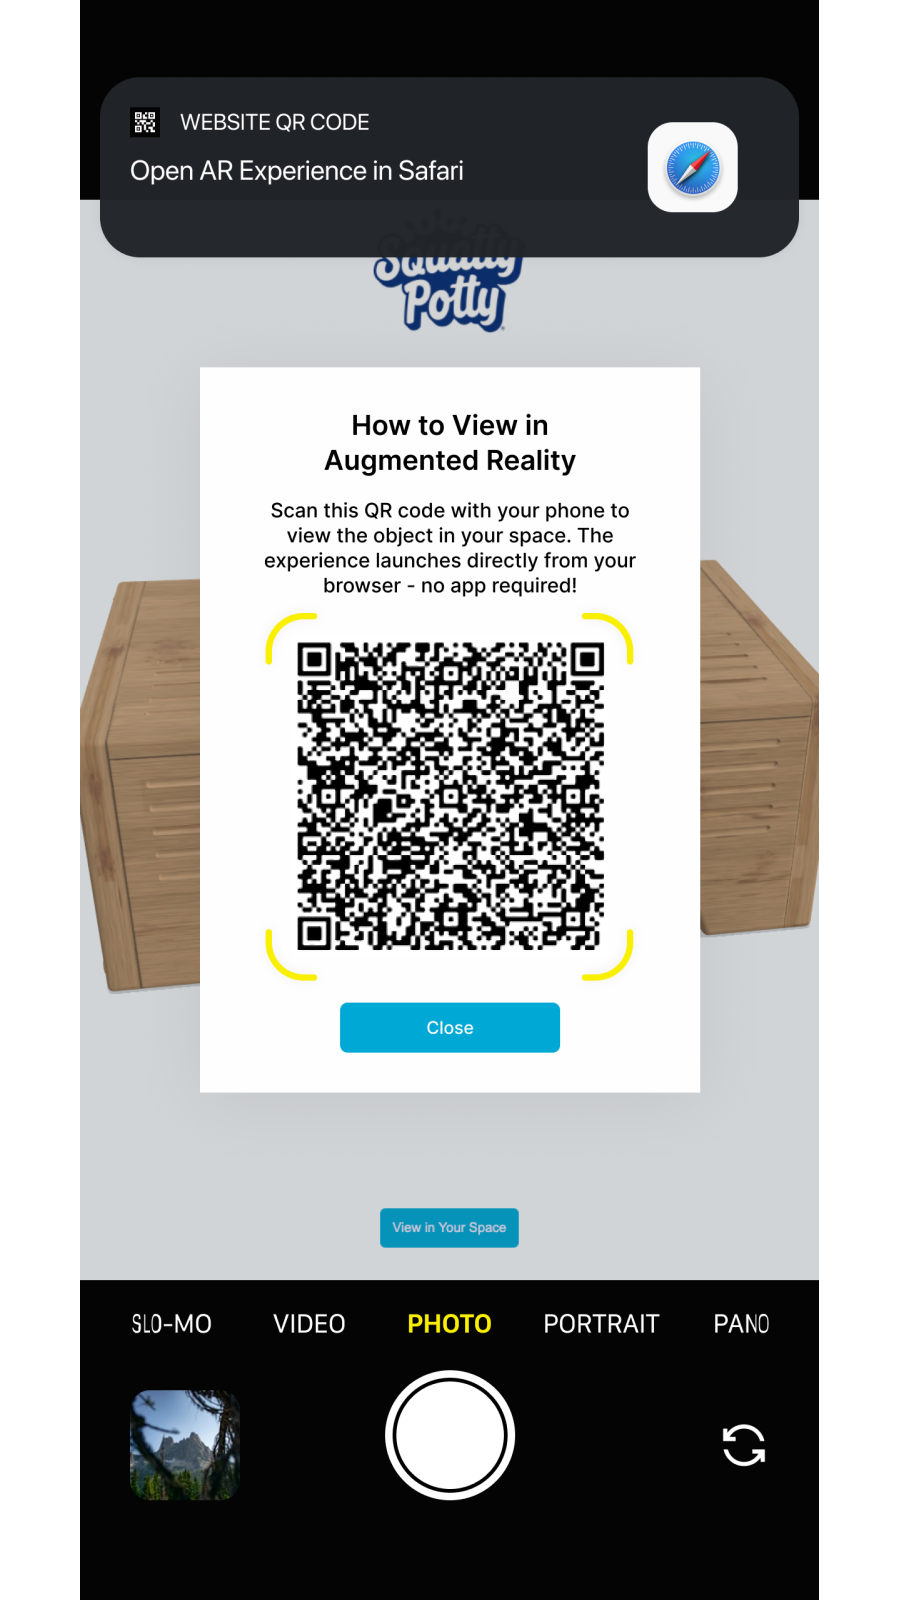 Scan the QR code with a phone camera to launch AR